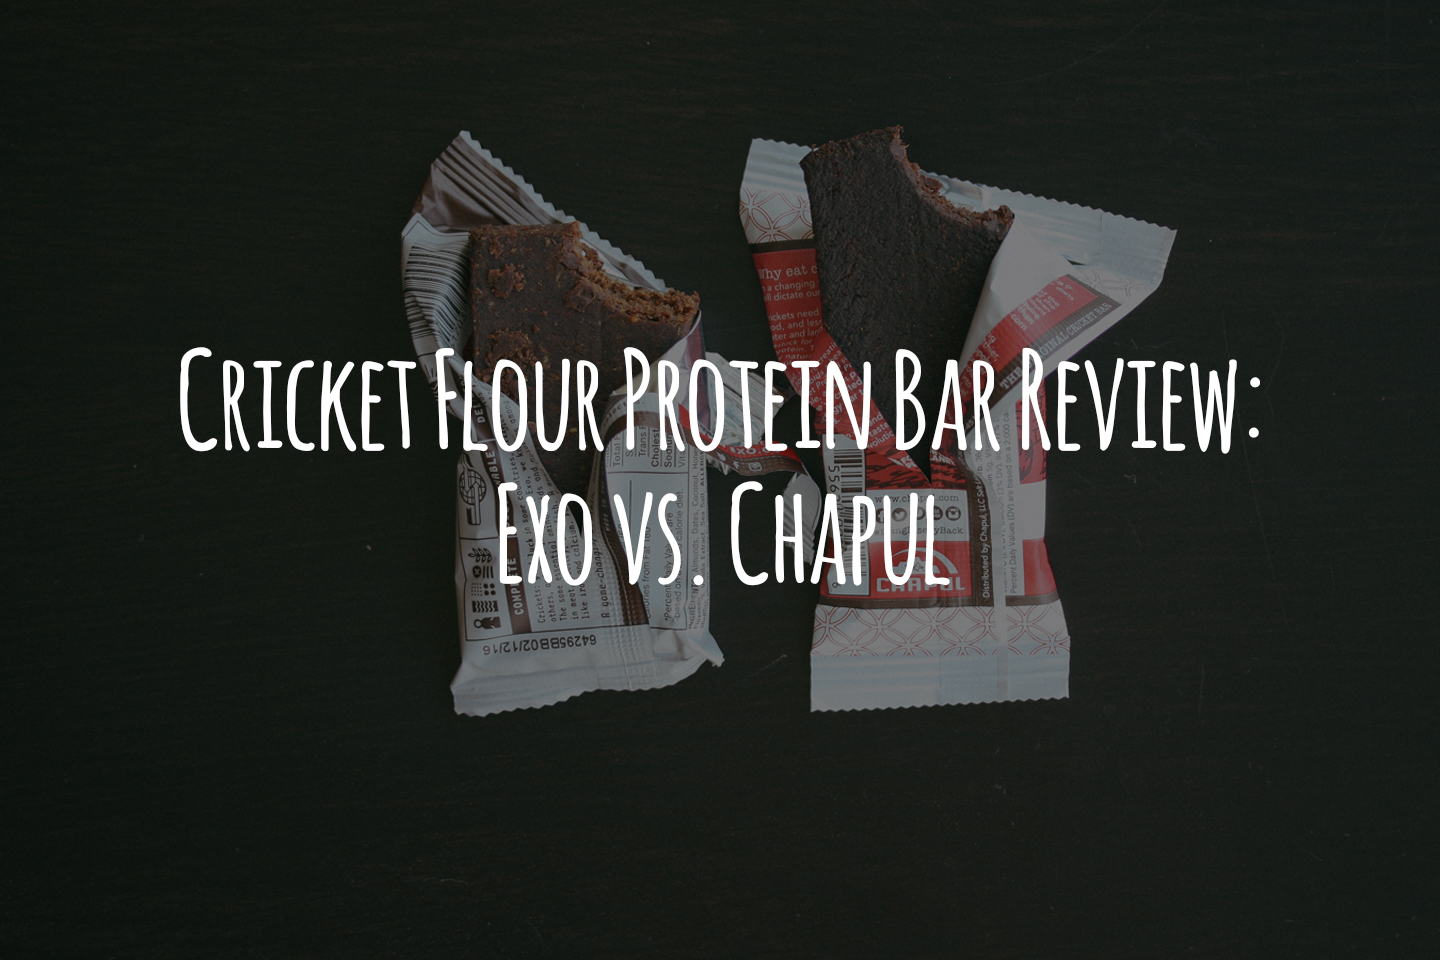 Cricket Flour Protein Bar Review: Exo vs. Chapul